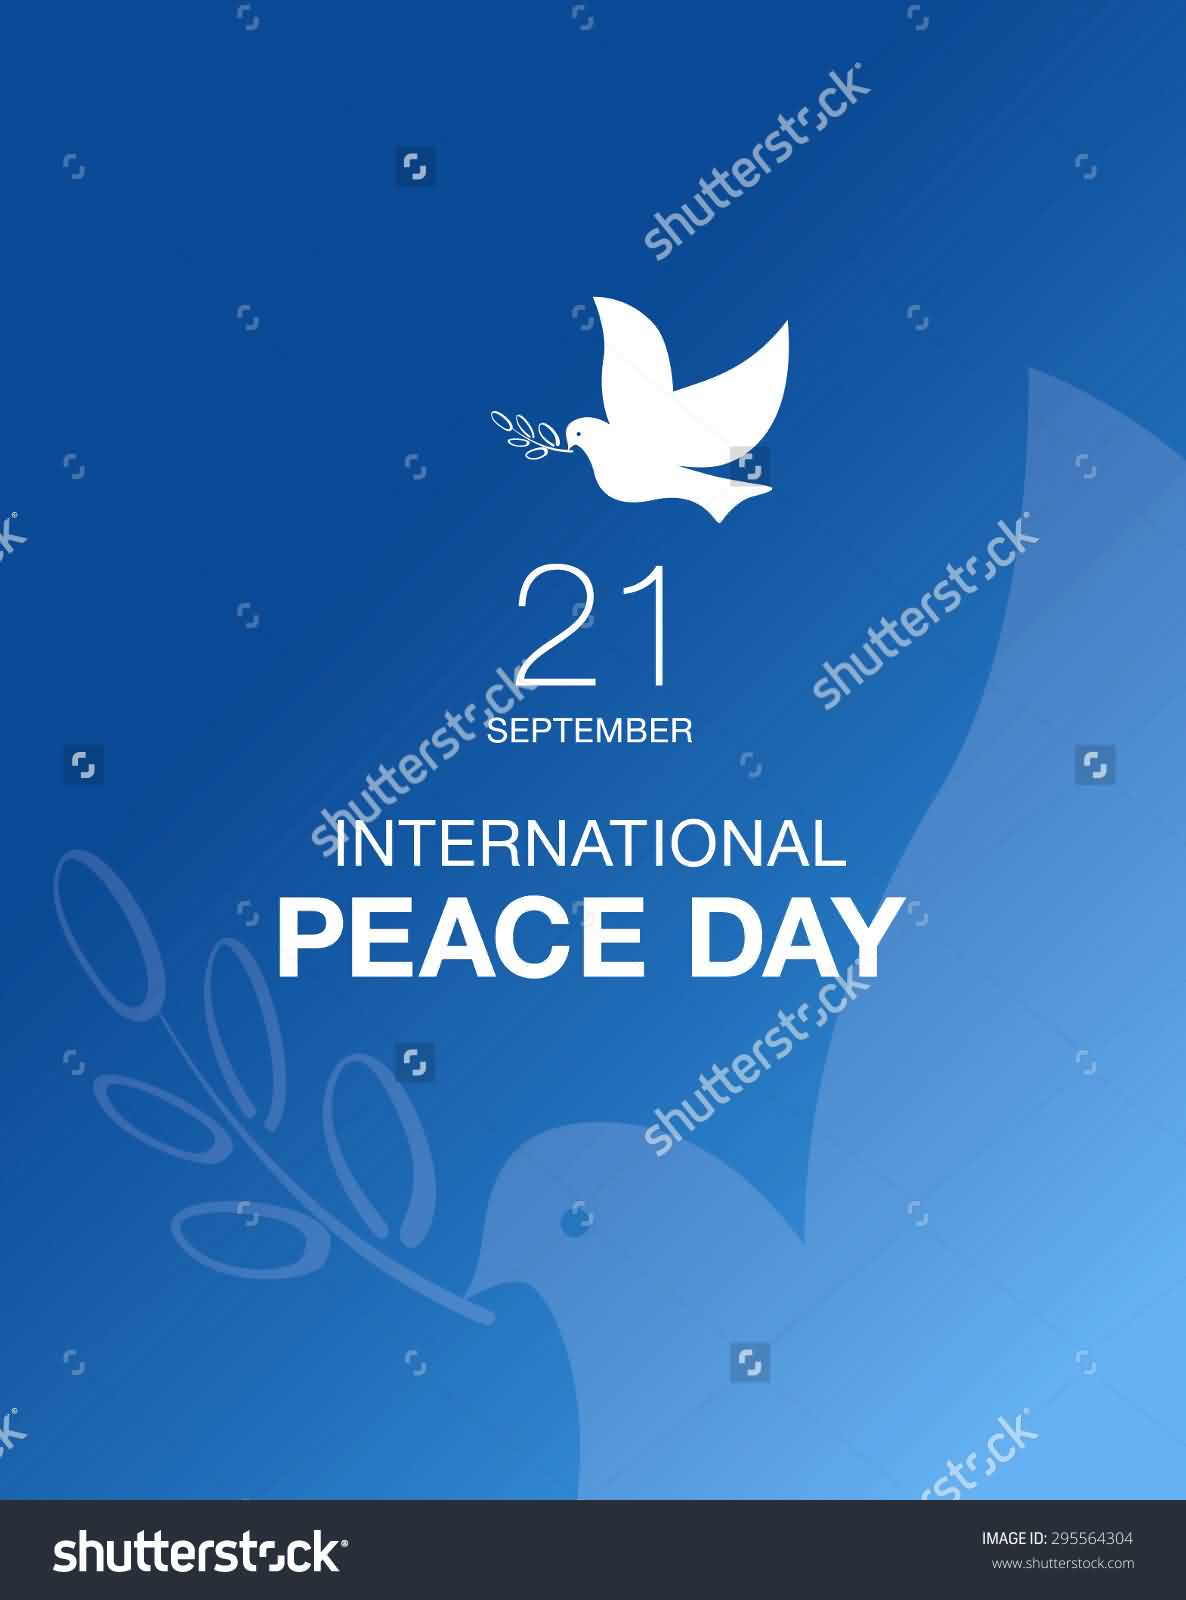 156-International Peace Day Wishes